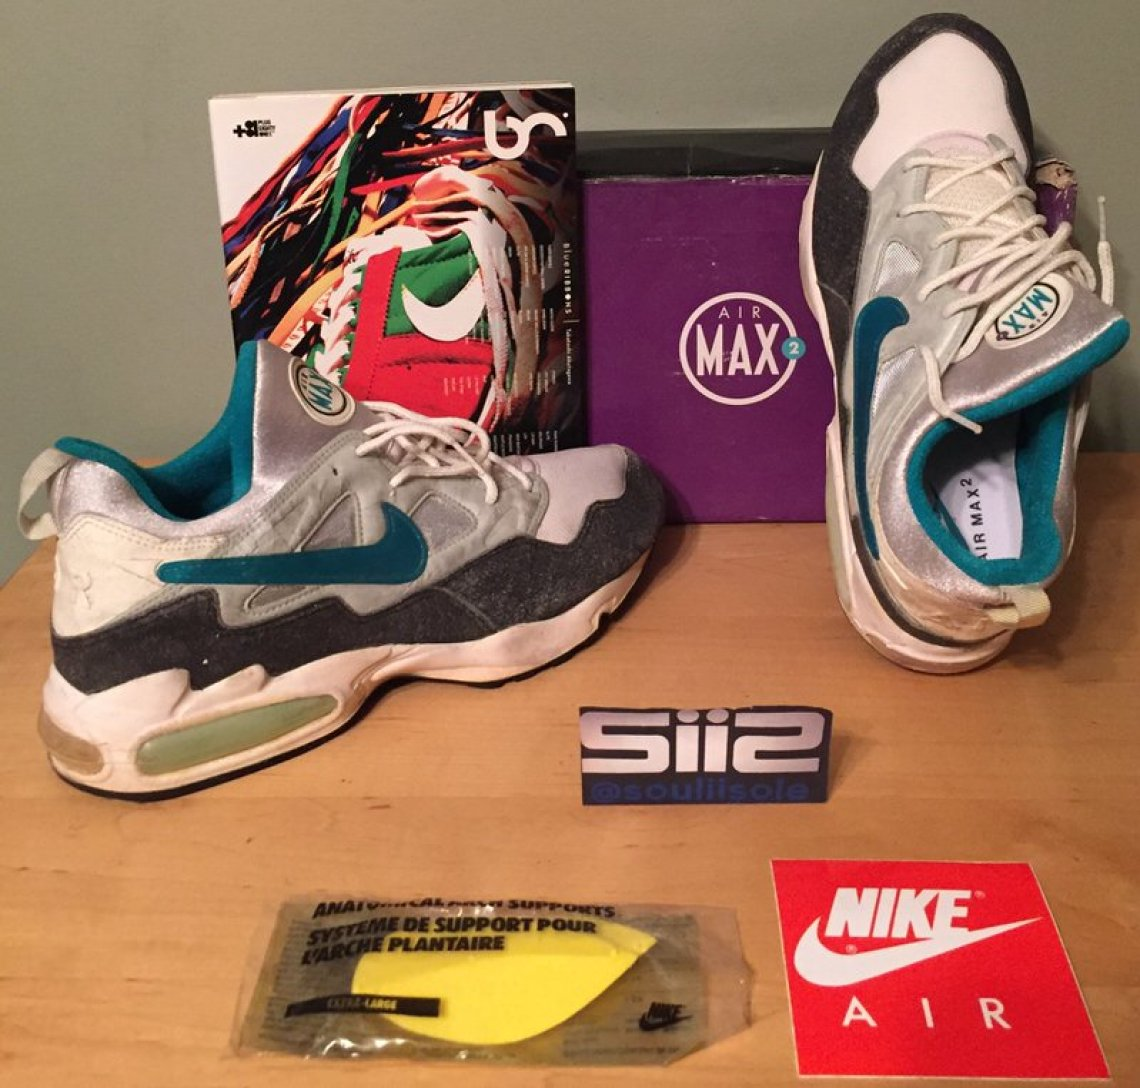 80a4949abb The Air Max2 running shoe served as a predecessor to other Air Max2 models  across multiple sport domains including Barkley's Air Max2 CB, Air Max2  Uptempo, ...